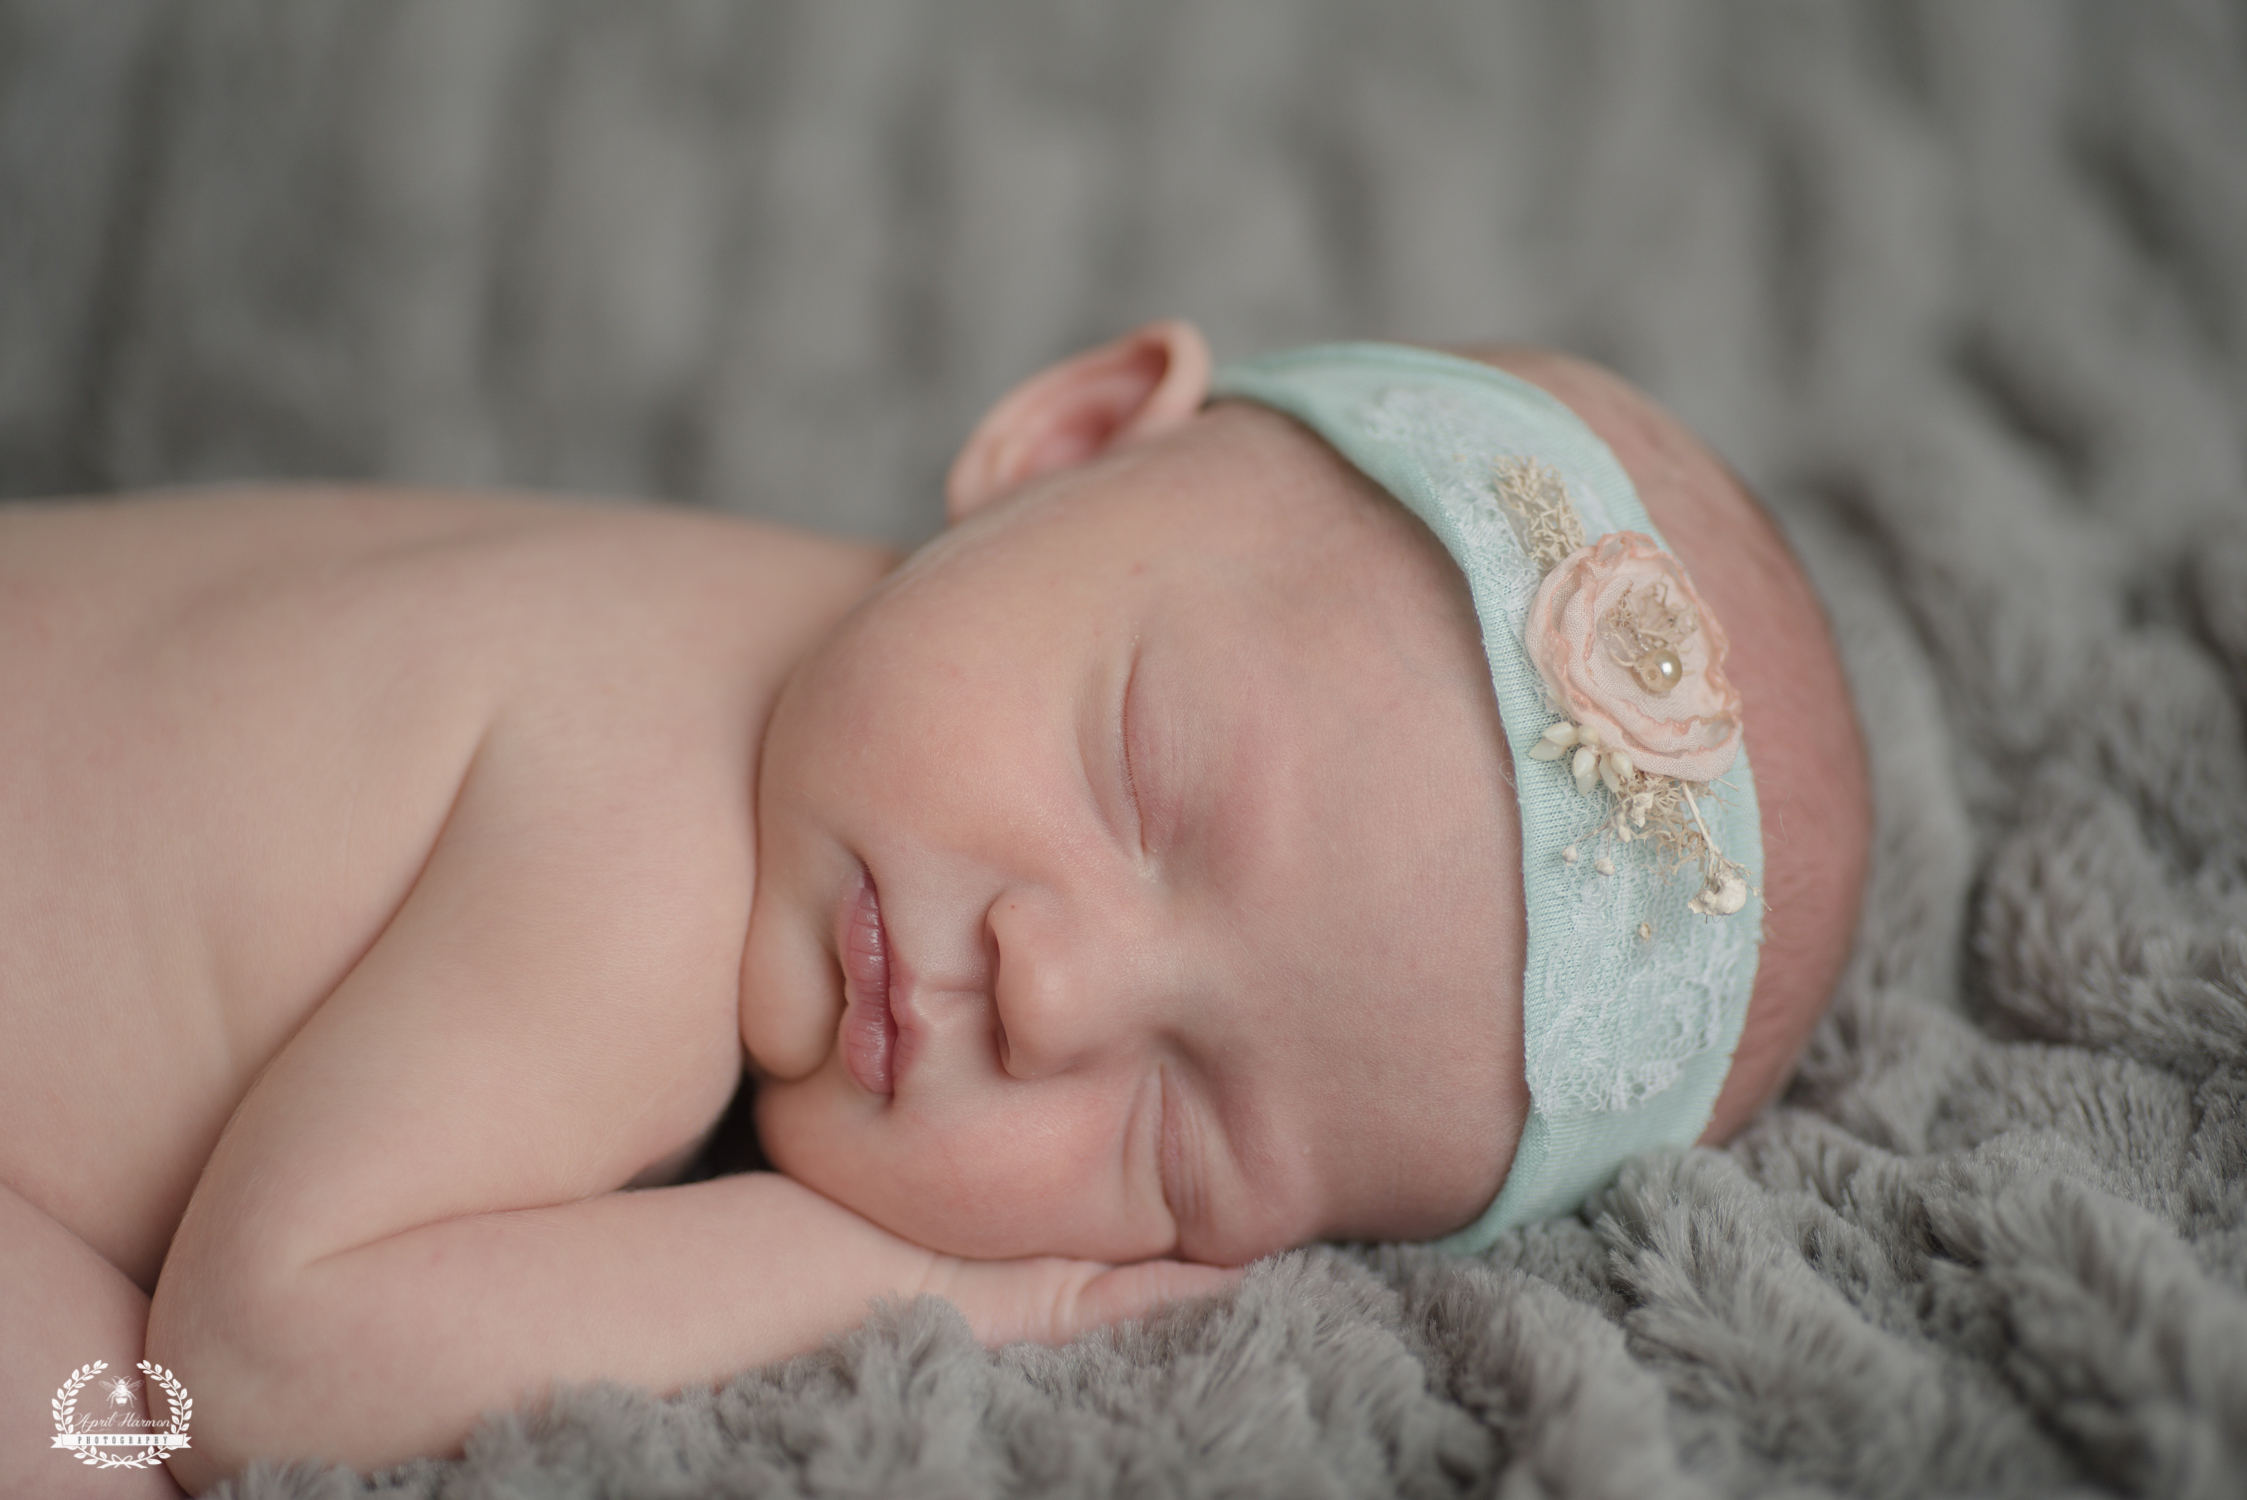 southwest-kansas-newborn-photography17.jpg